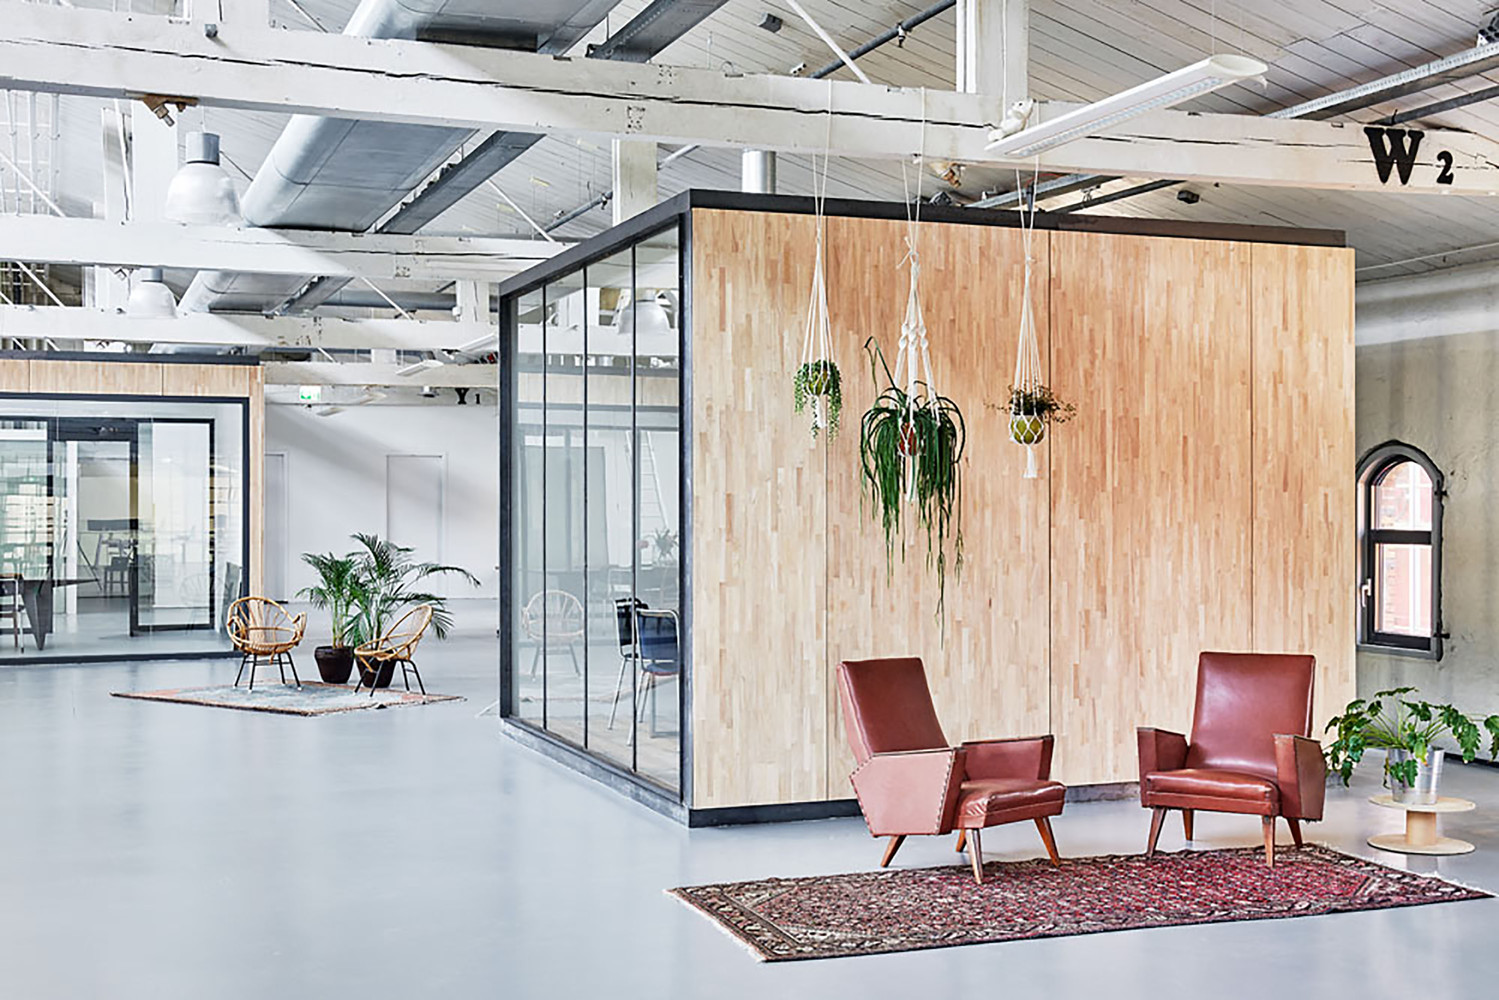 fairphone head office in amsterdam james stokes photography